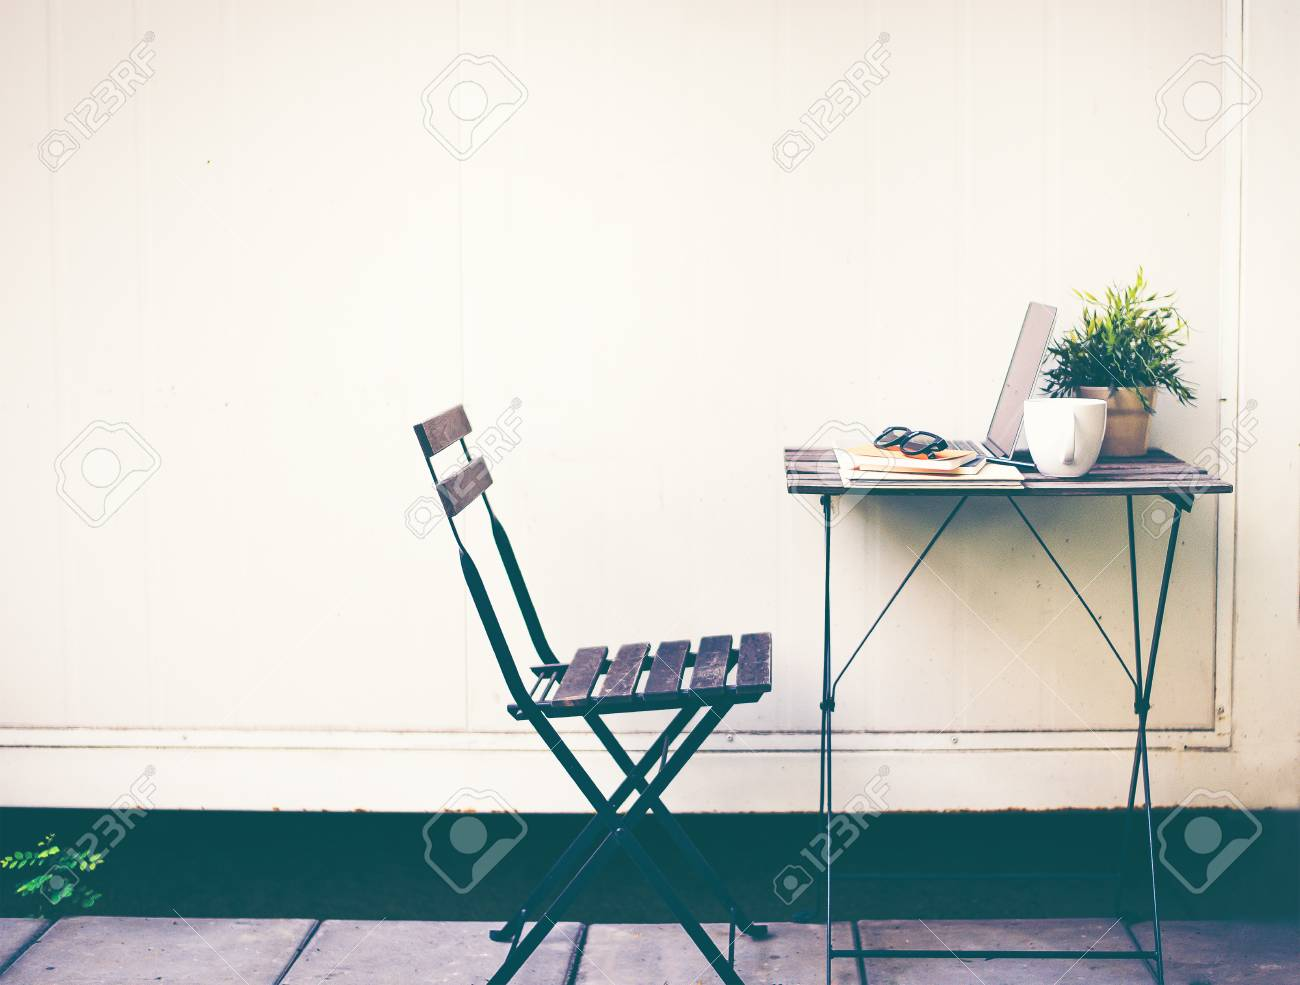 Stock Photo Workspace relaxing chill out